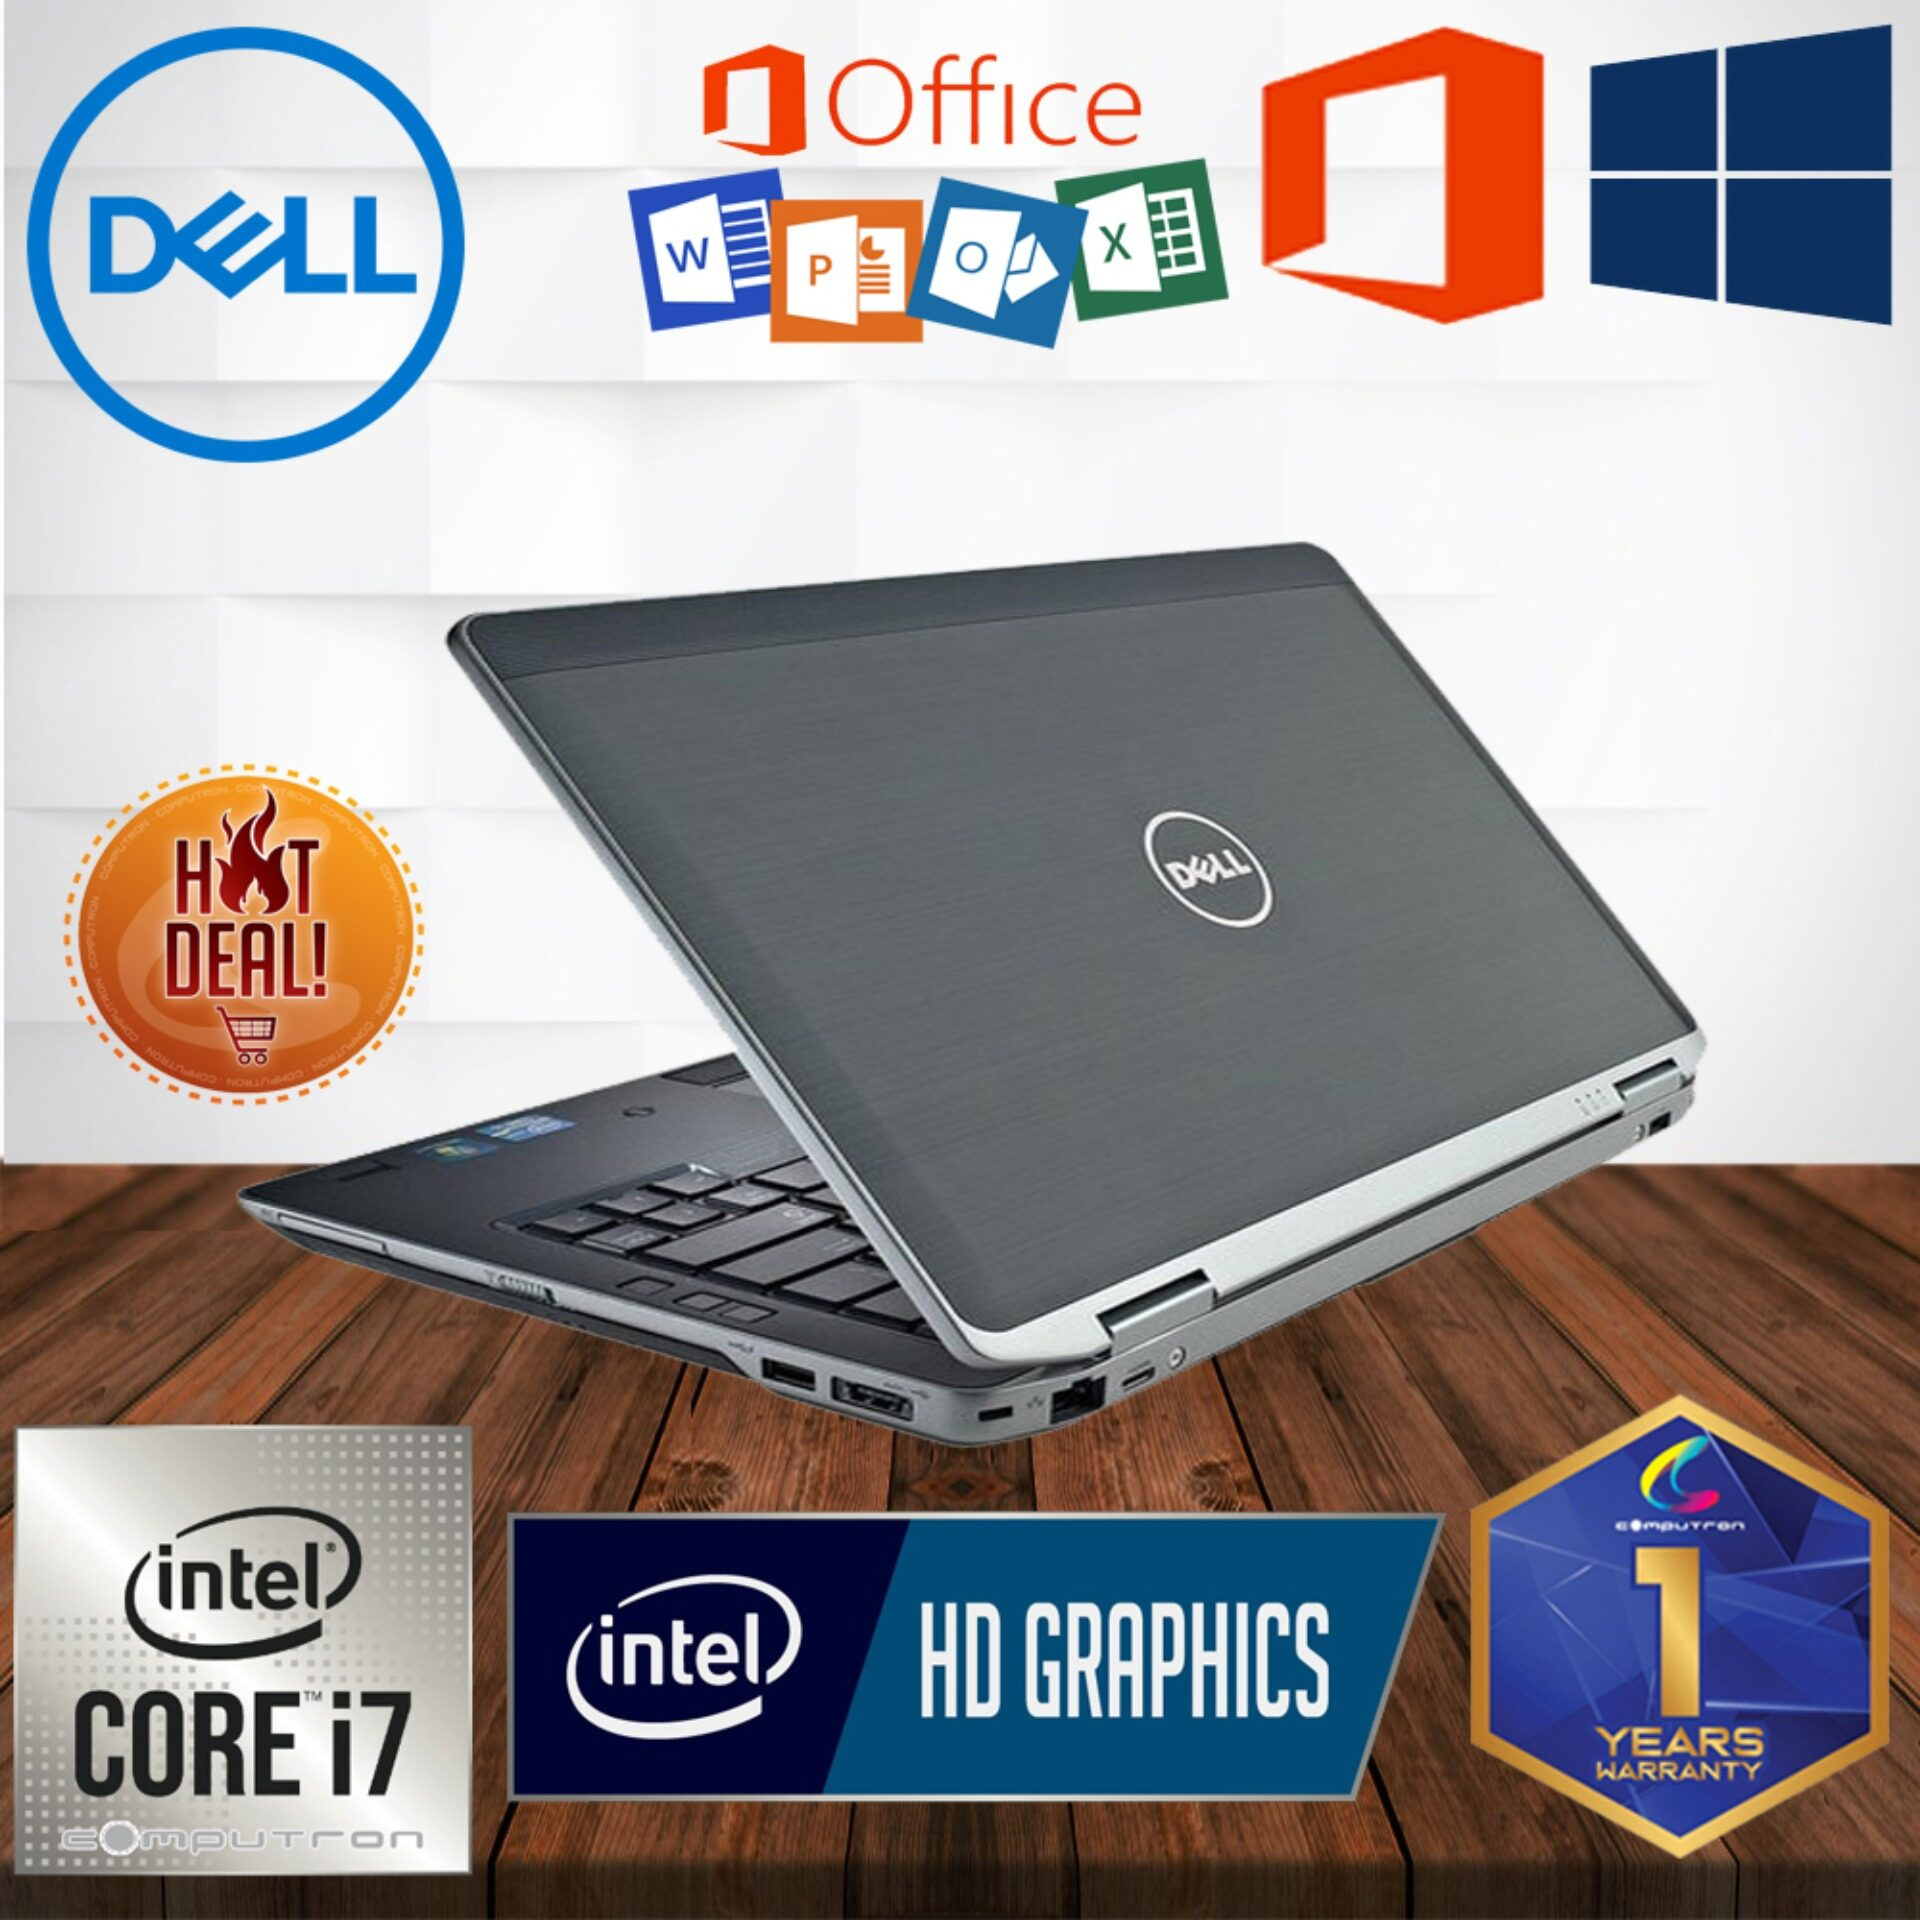 DELL LATITUDE E6330 CORE I7 IVY BRIGDE / 8GB DDR3 RAM / 320GB HDD STORAGE / 13 INCH LED SCREEN / WINDOW 10 PRO GENUINE [1 YEAR WARRANTY] [ LAPTOP ] Malaysia